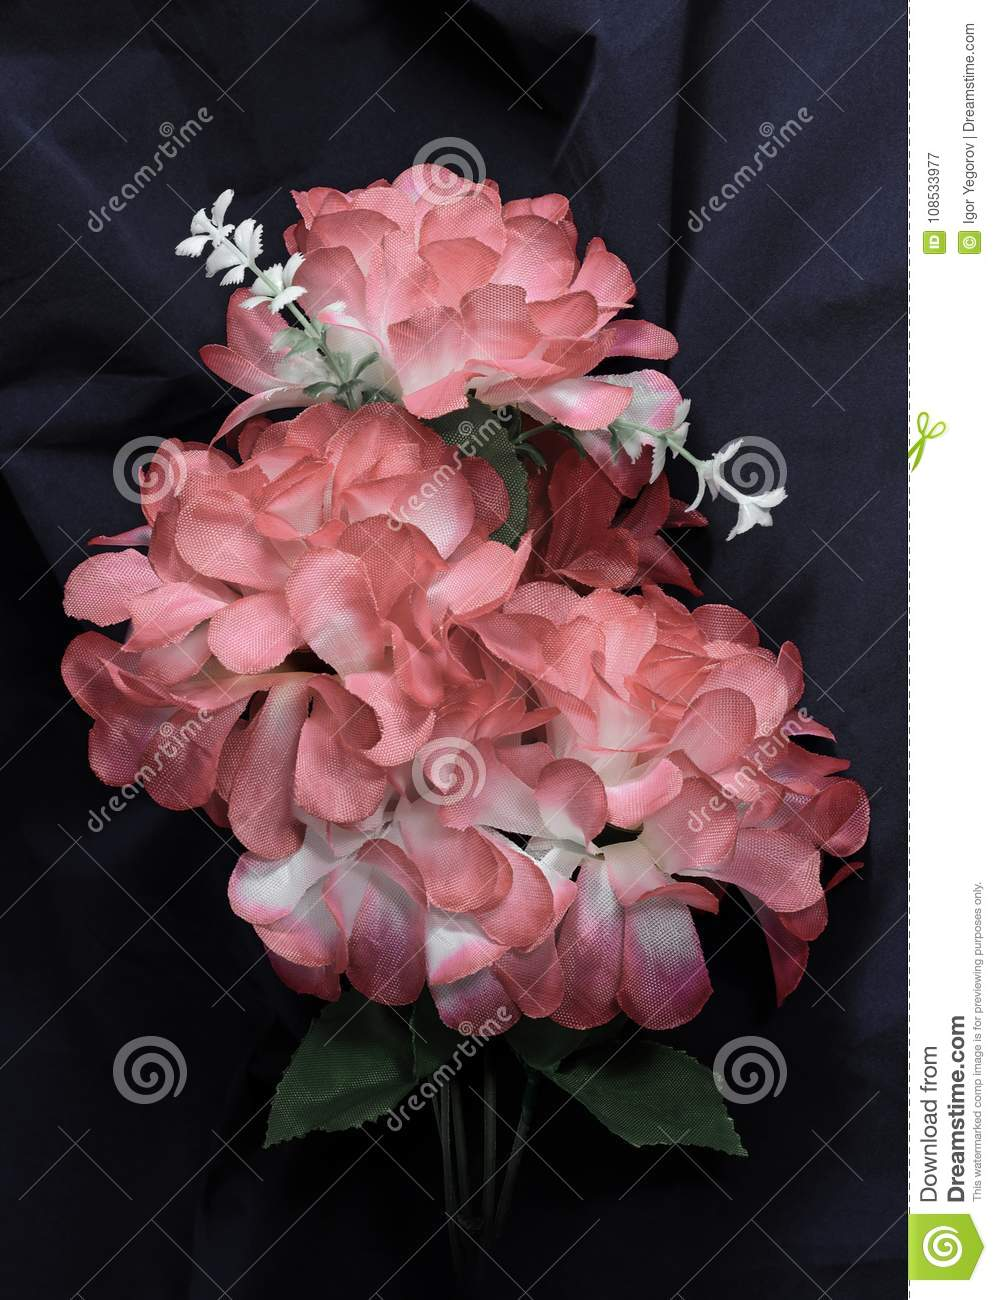 Branch Faded Artificial Flowers Stock Image Image Of Funeral